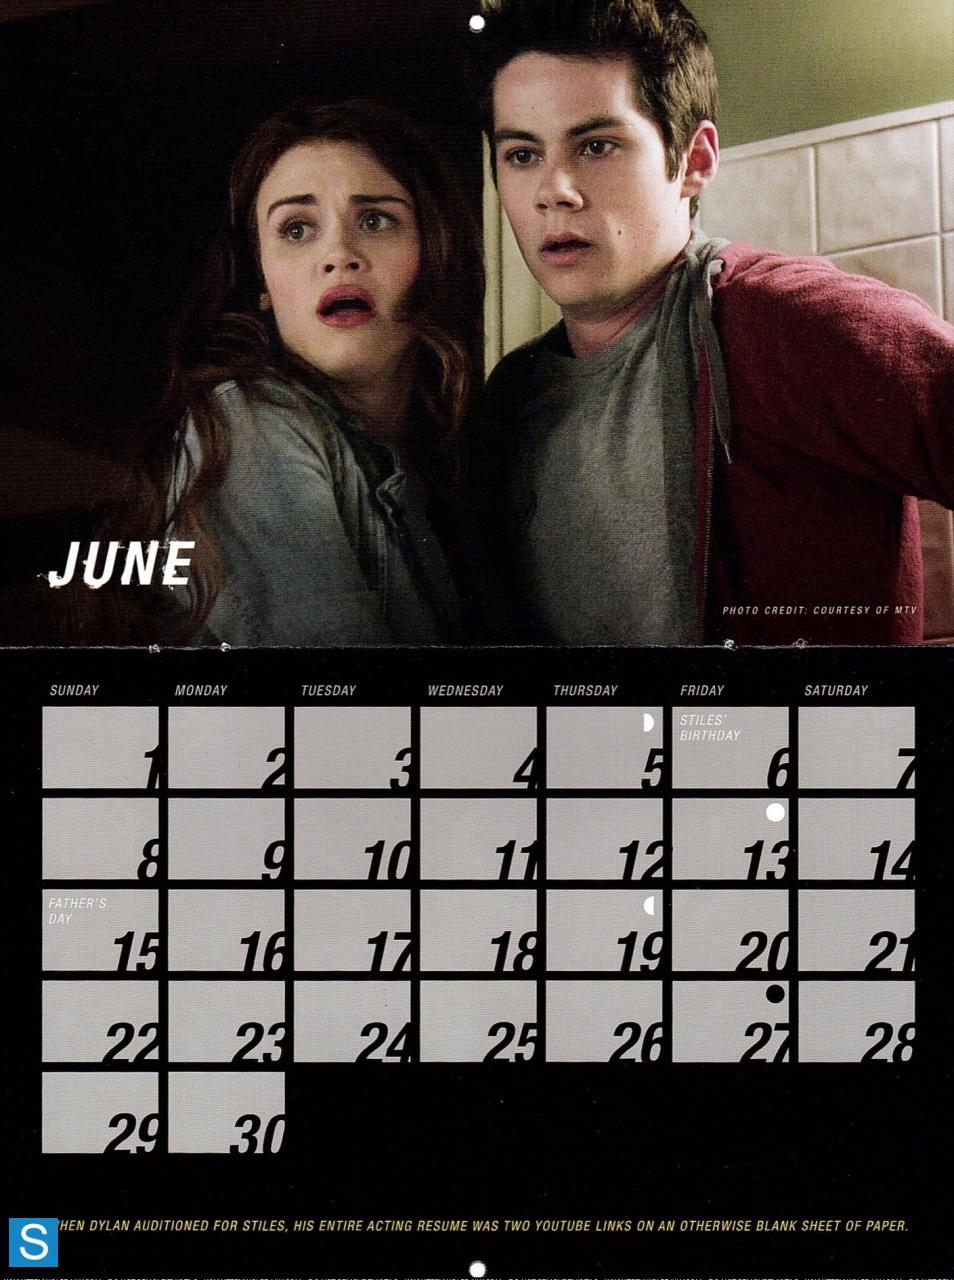 Teen loup - Season 3 - 2014 Calendar Promotional photos